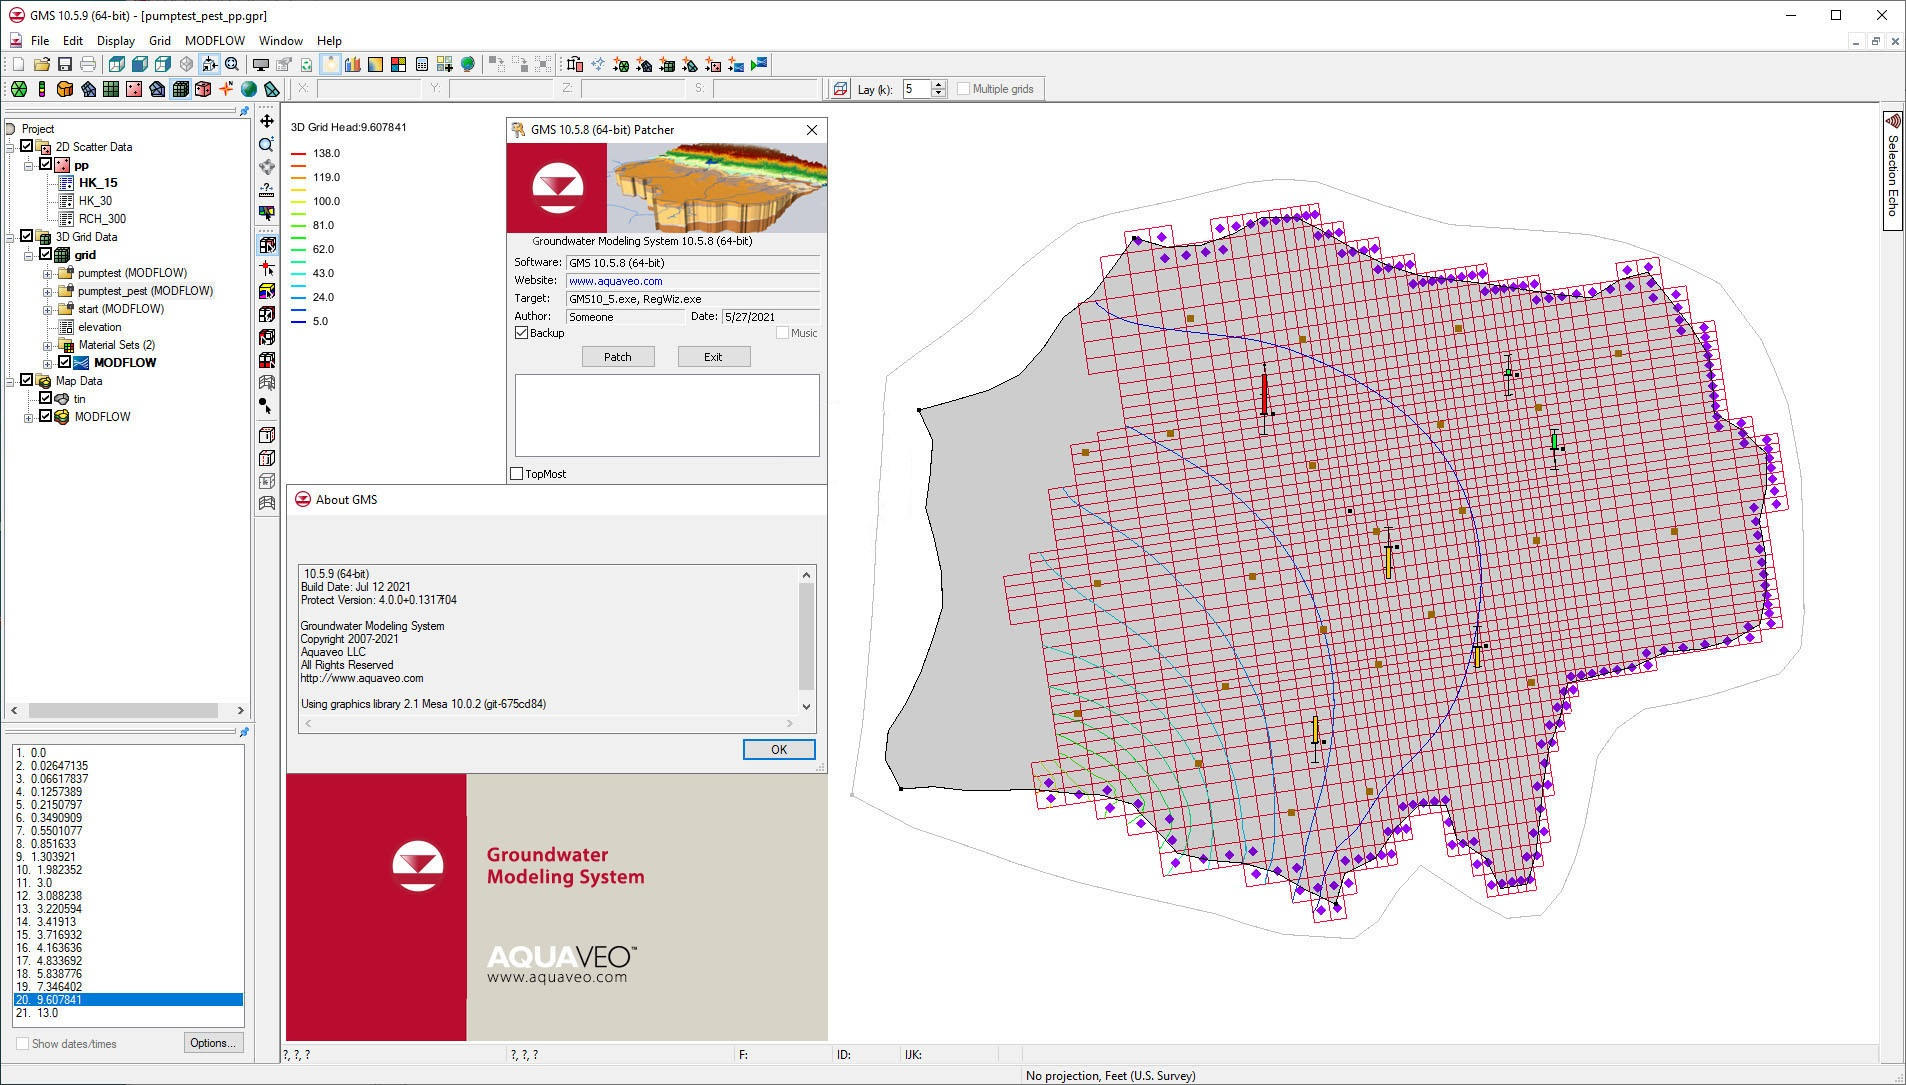 Working with Download Aquaveo Groundwater Modeling System Premium v10.5.9 x64 full